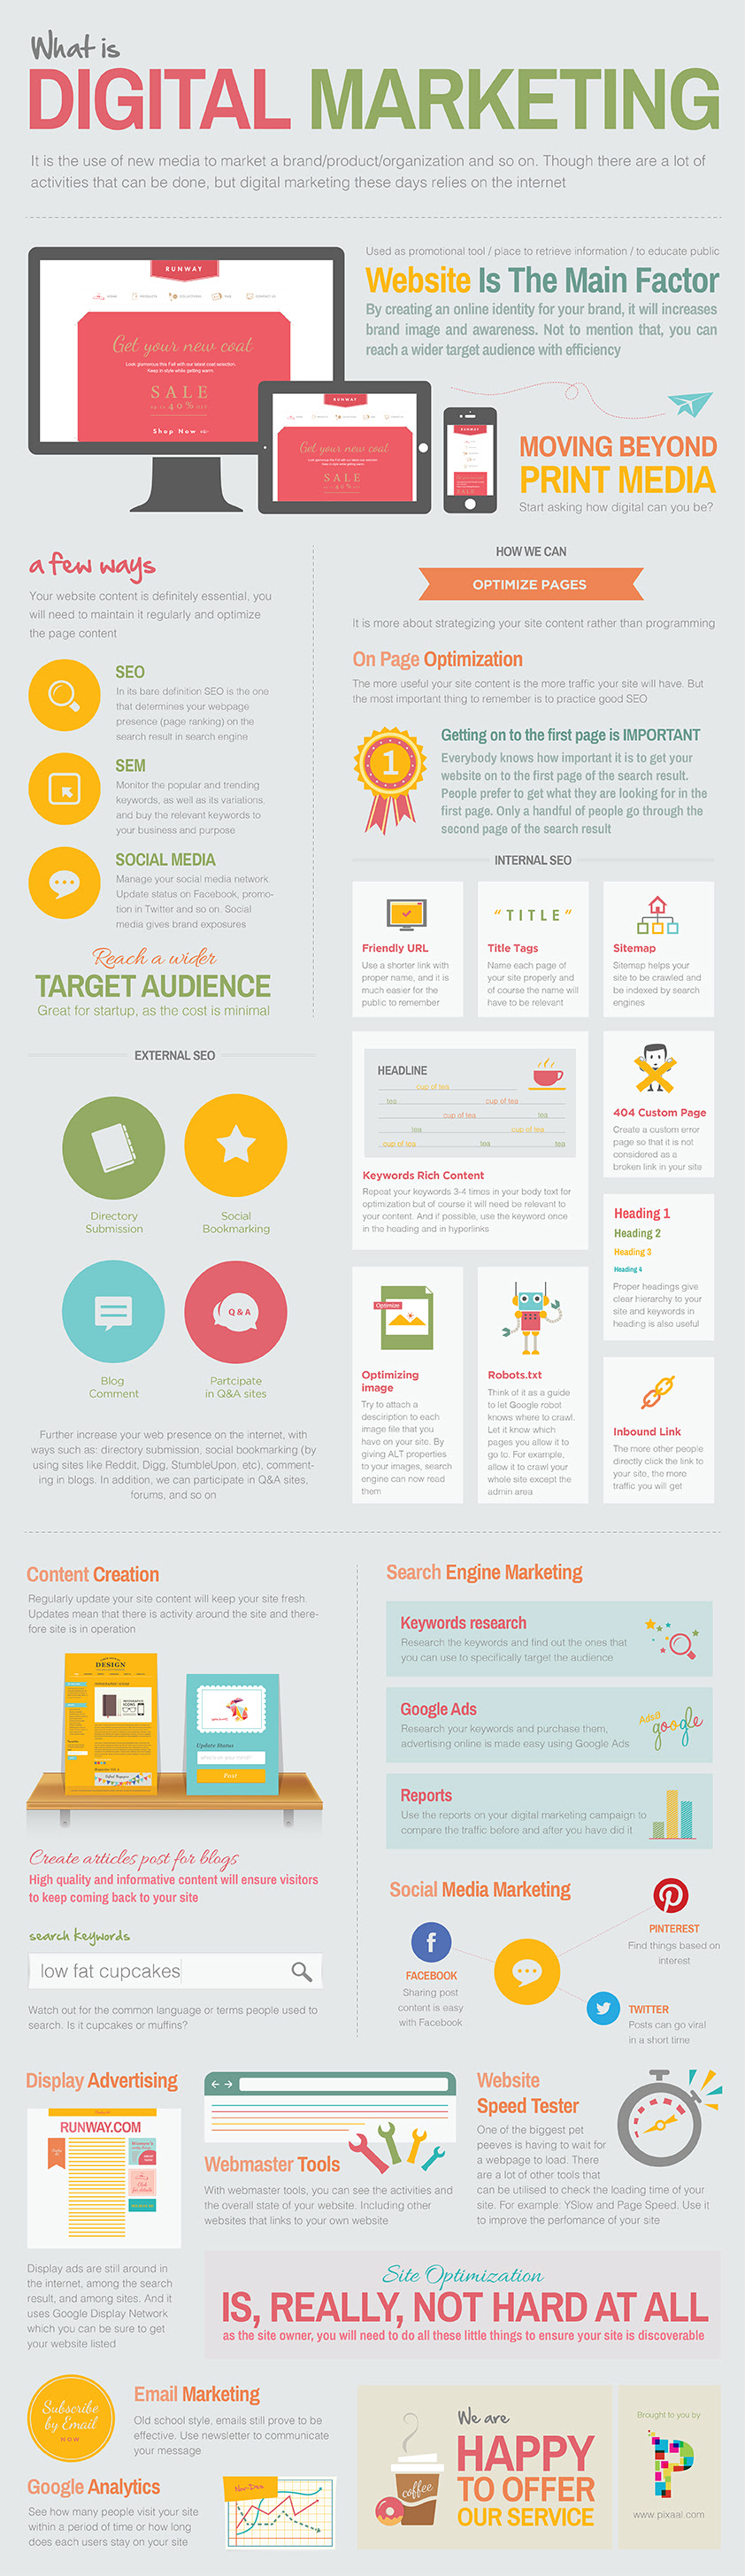 infographic: What Is Digital Marketing: How To Increase Brand Visibility